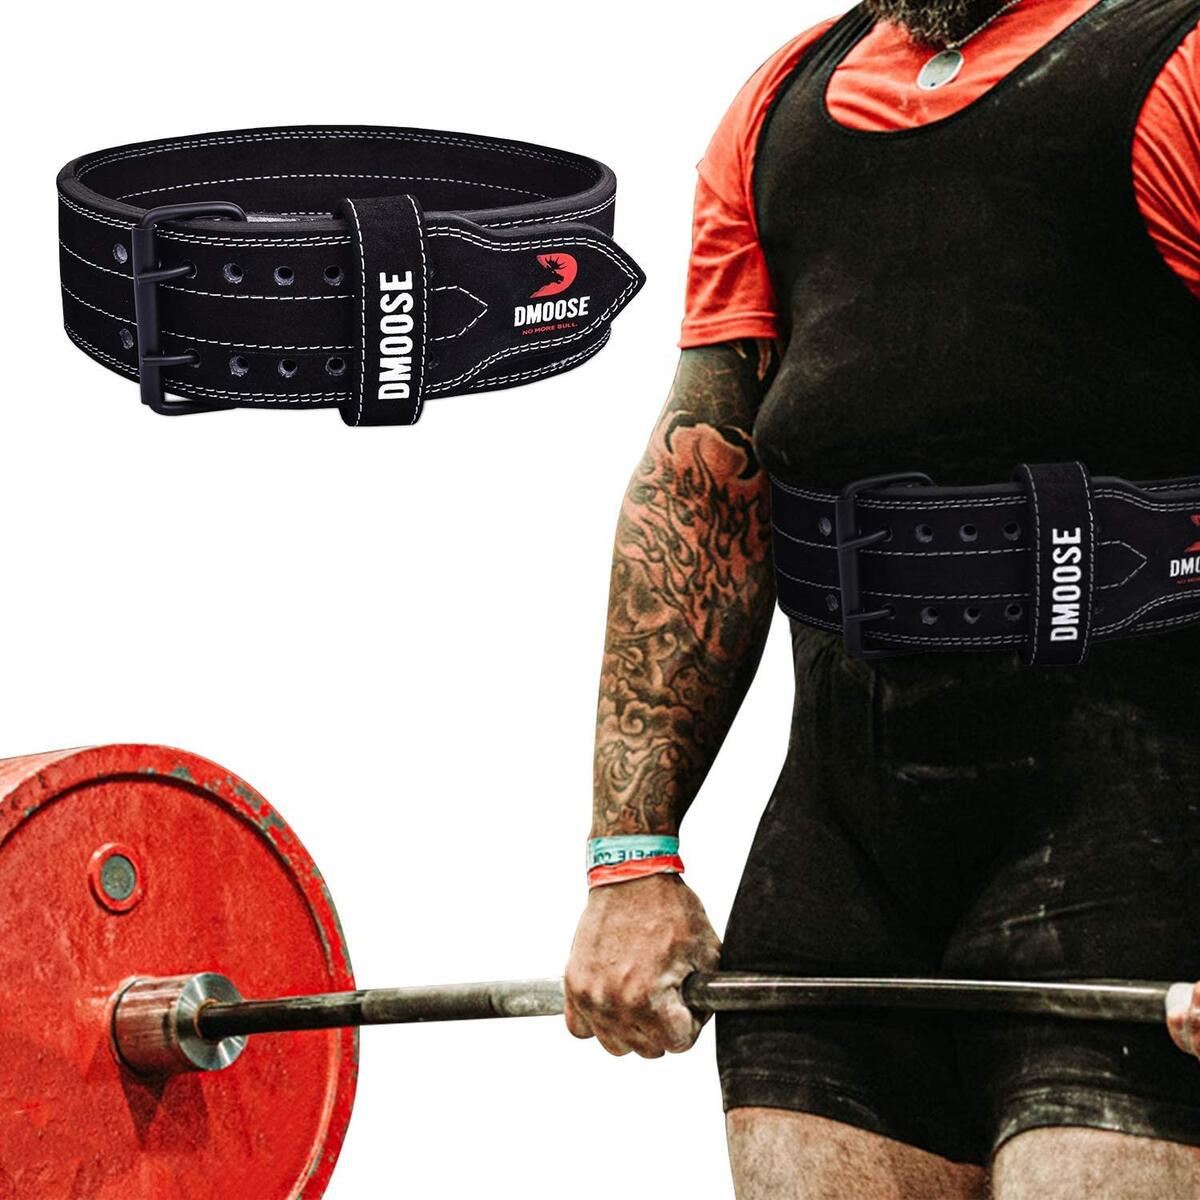 DMoose Powerlifting Buckle Genuine Leather Belts (10MM Black/White Stitch ONLY)